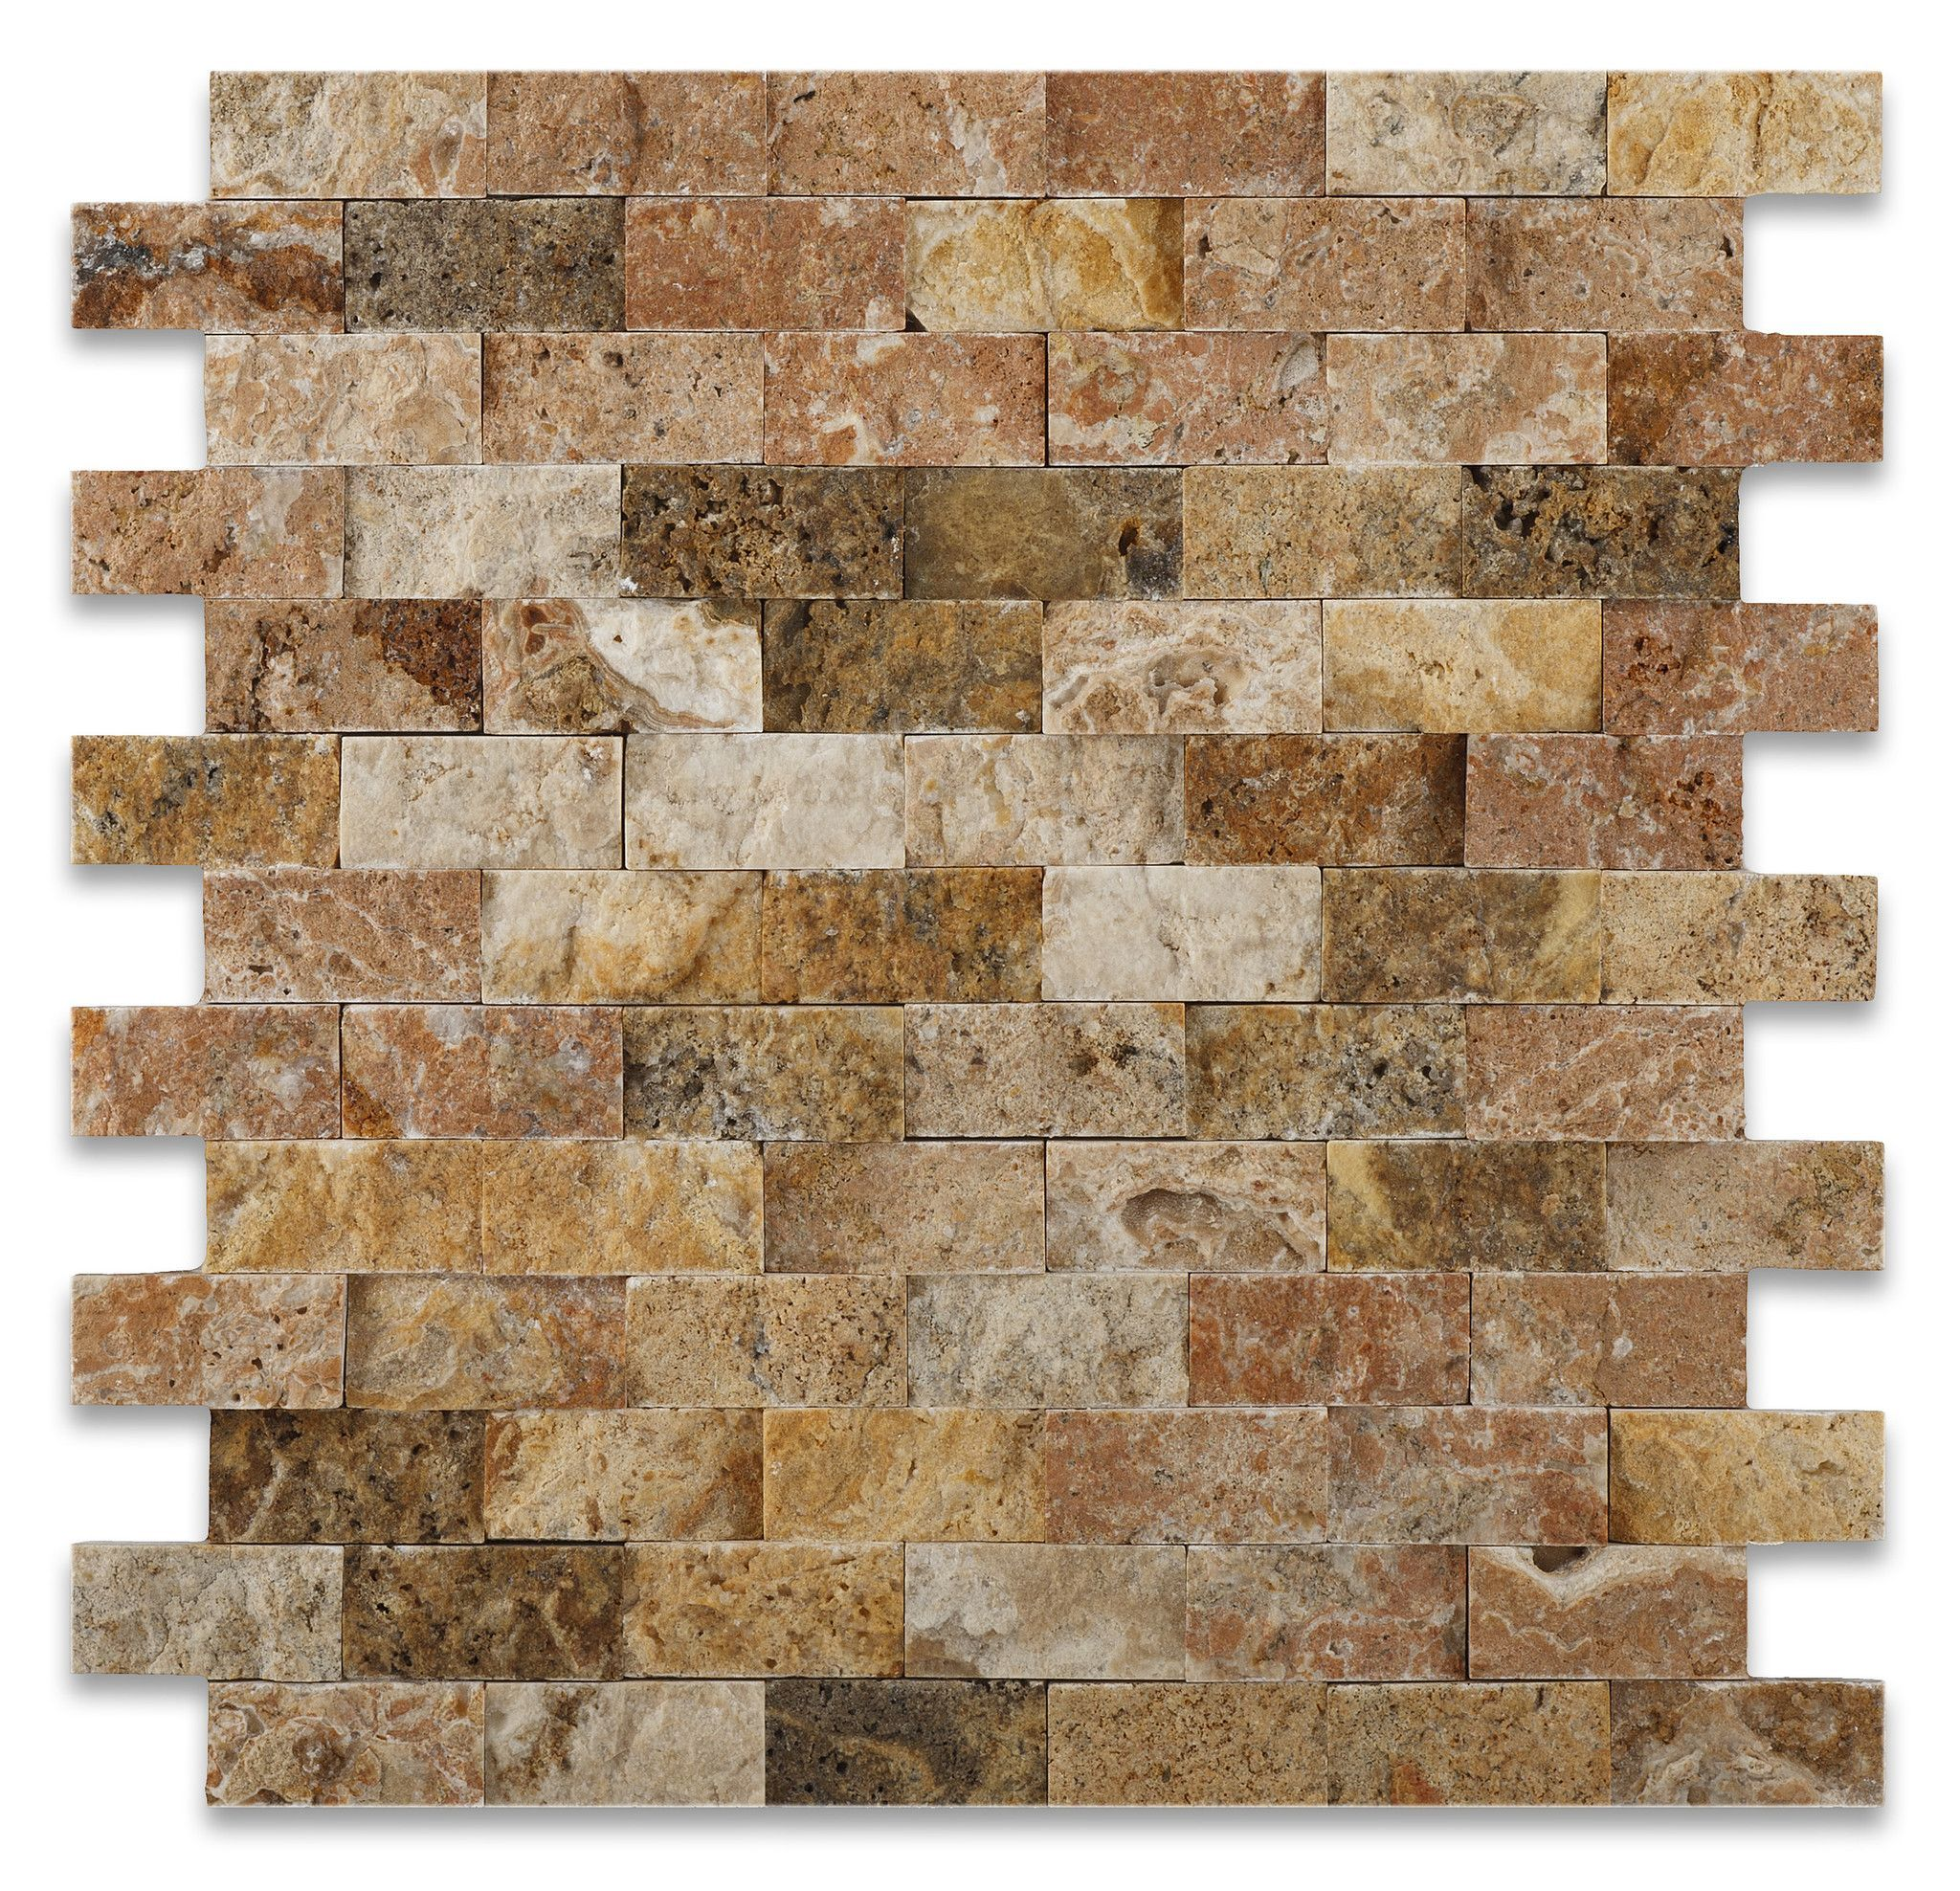 1 X 2 Scabos Travertine Split-Faced Brick Mosaic Tile | Travertine ...